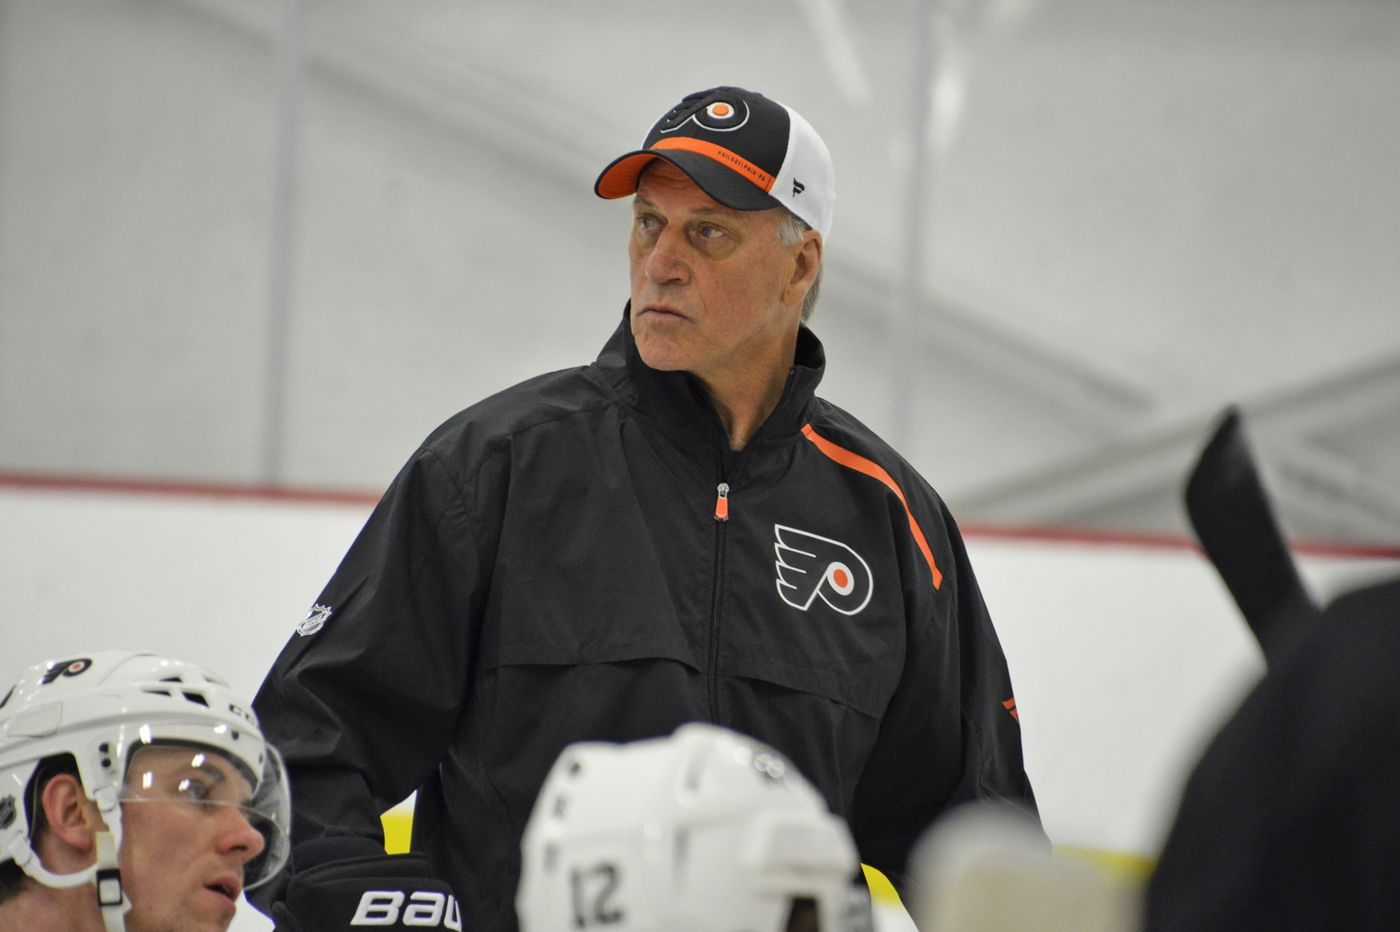 Flyers need new assistant coach Rick Wilson to get Ivan Provorov, 'Ghost' back on track   Sam Carchidi